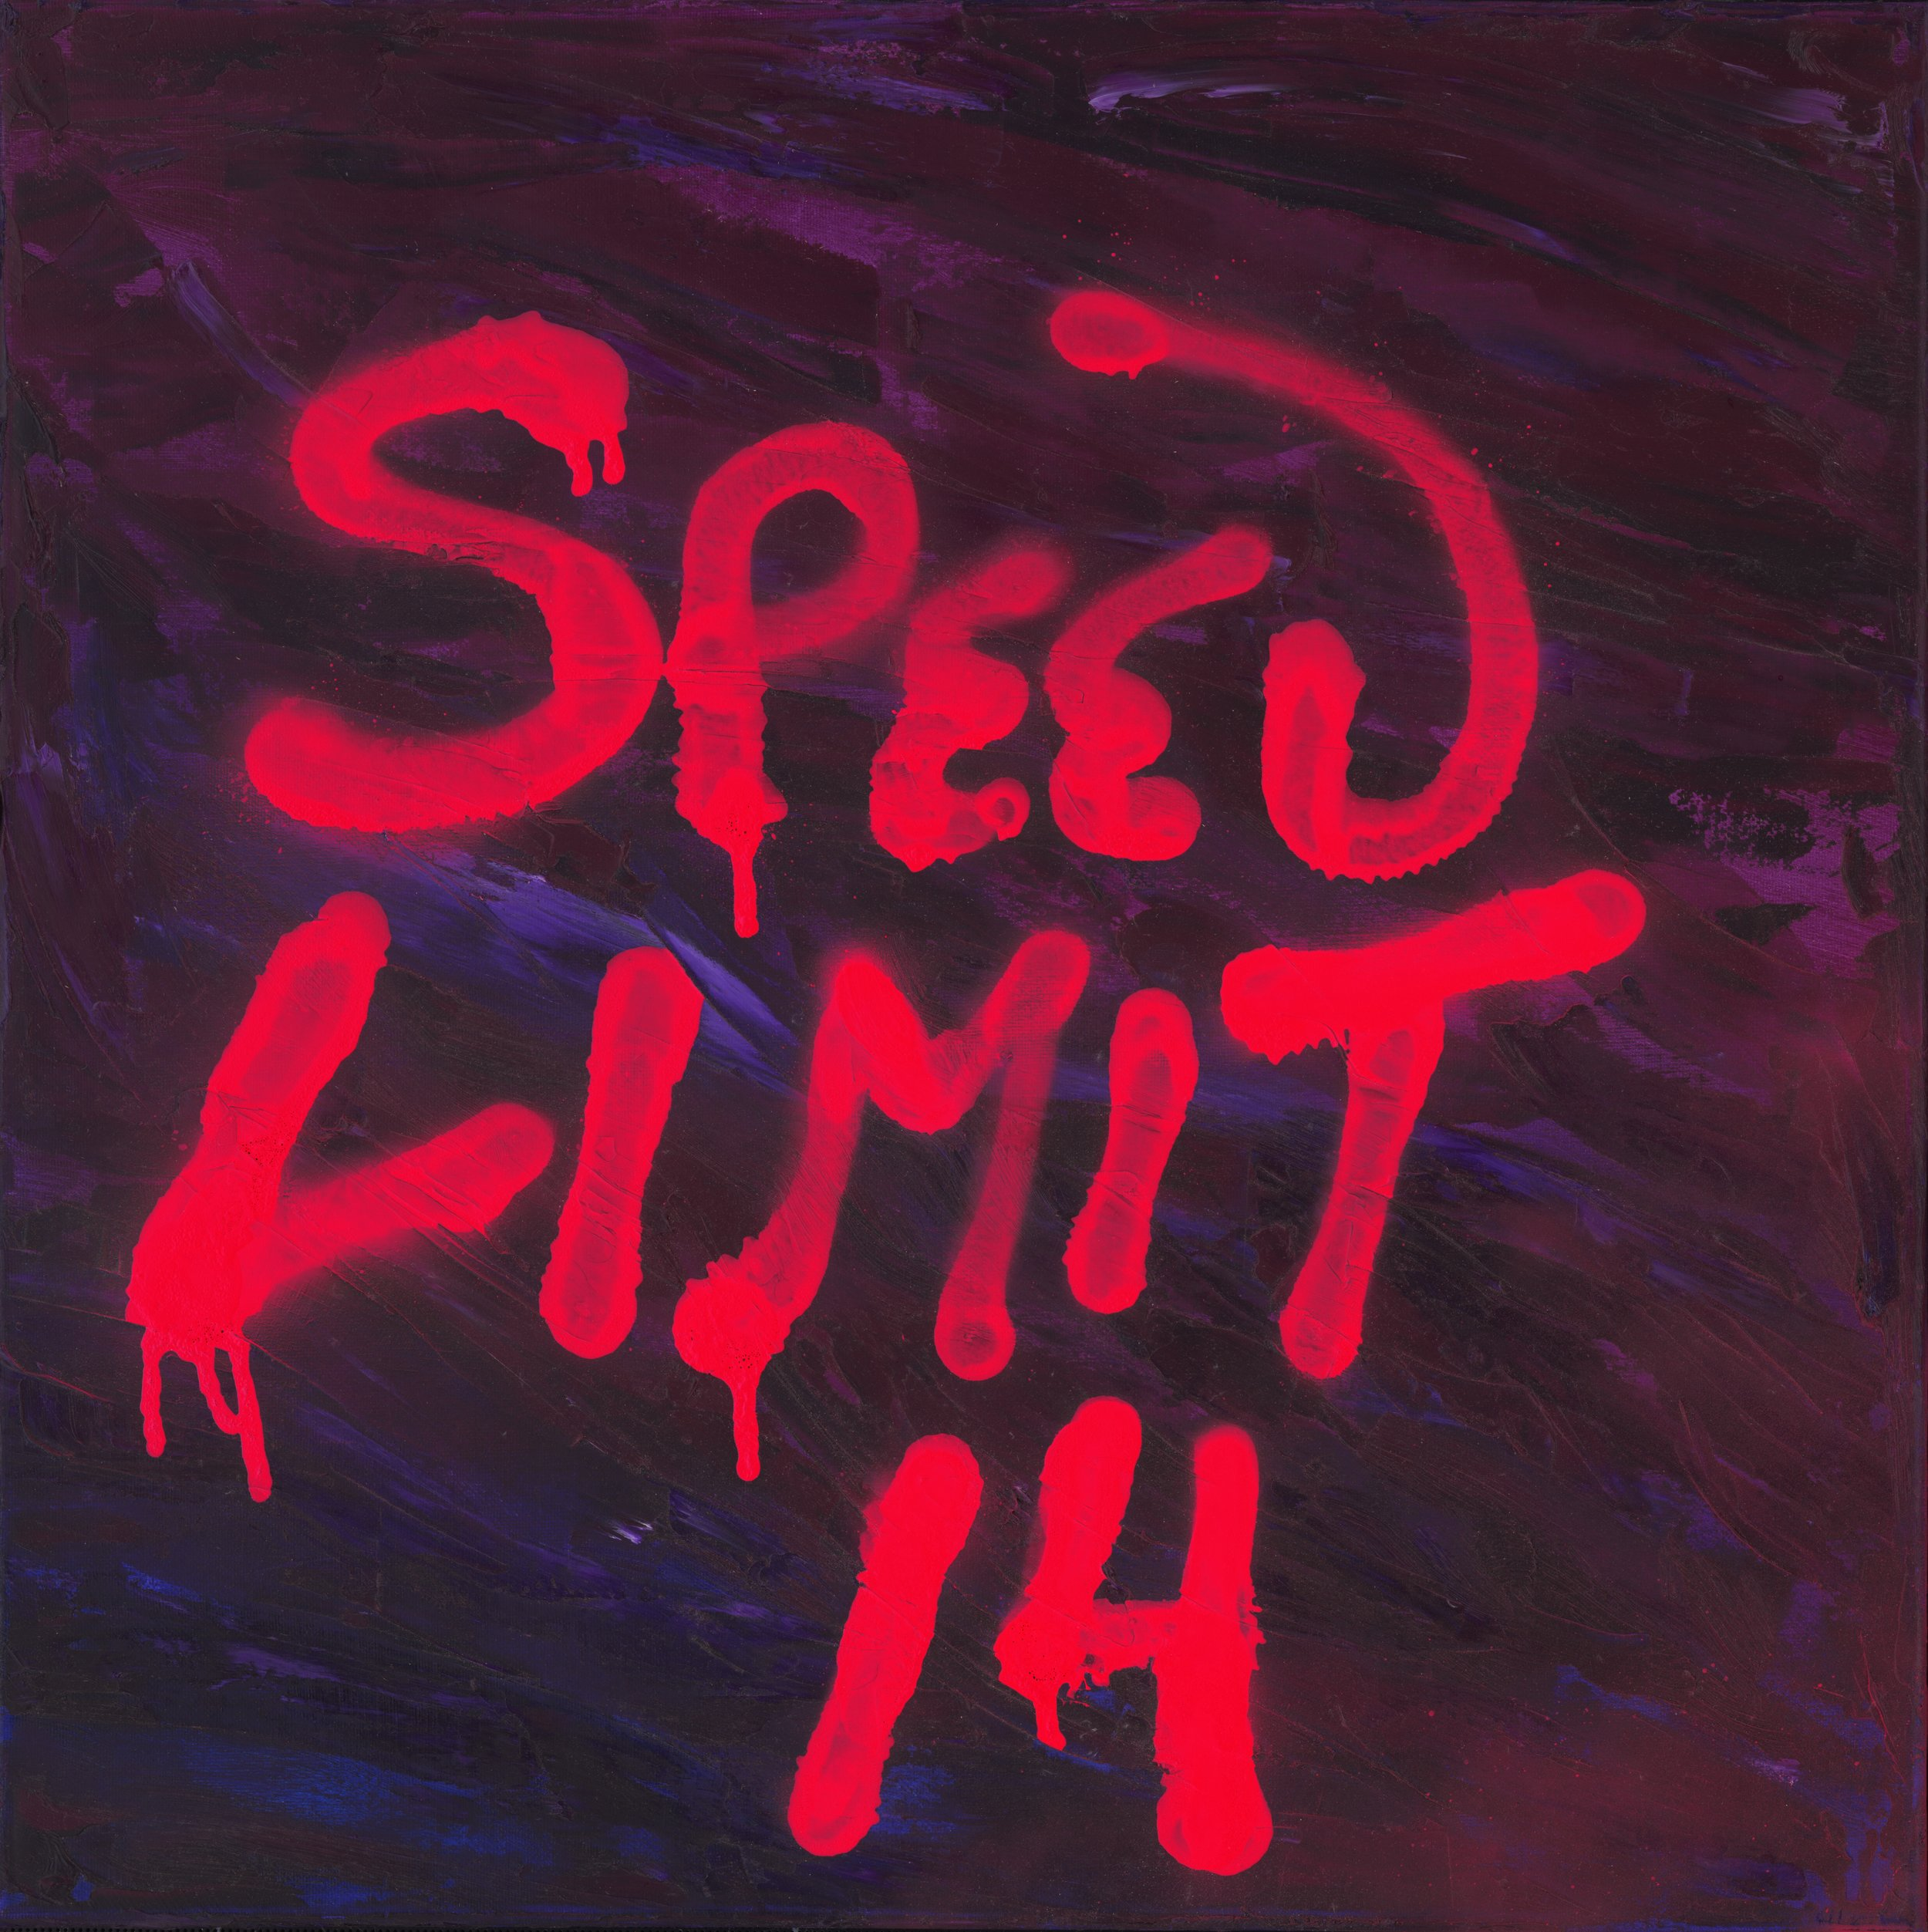 Caeser-speed limit-rev2.jpg